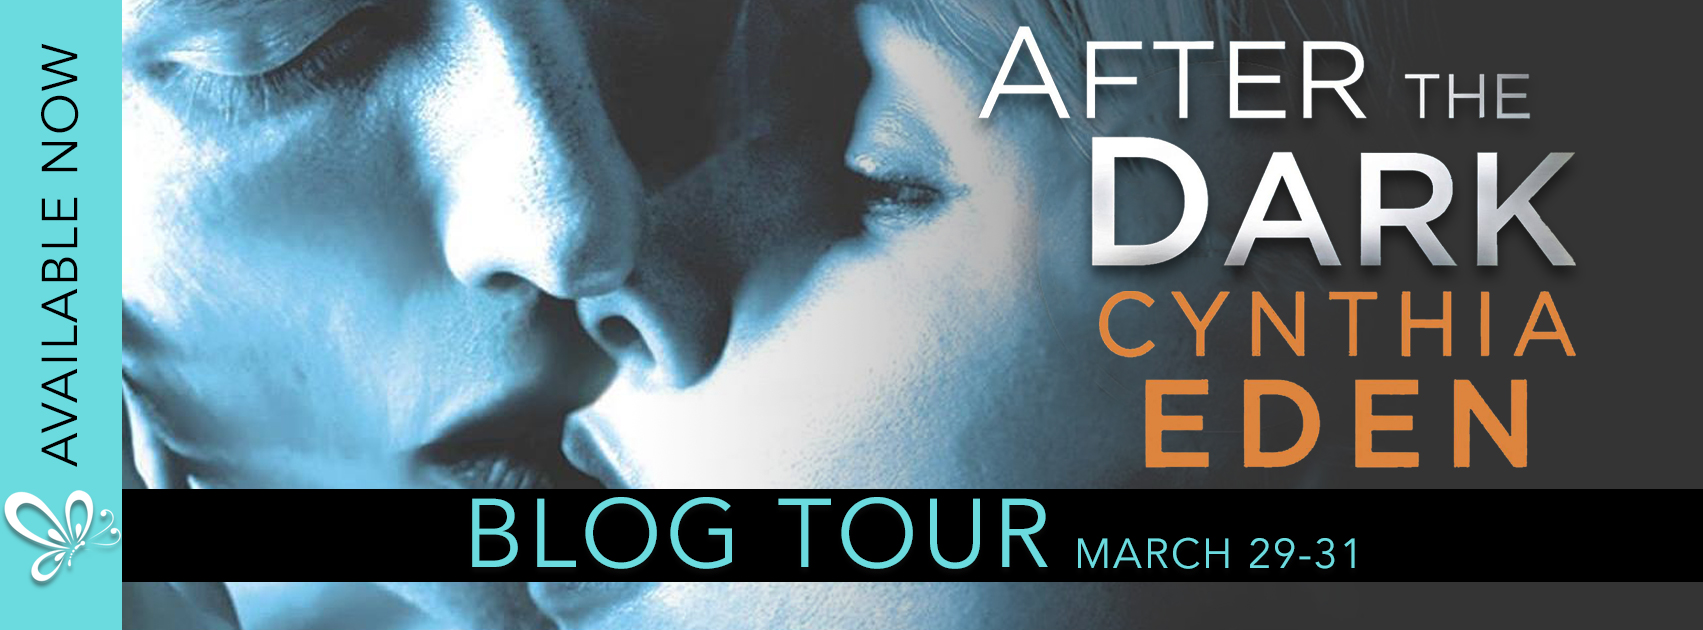 SBPRBanner-AftertheDark-BT